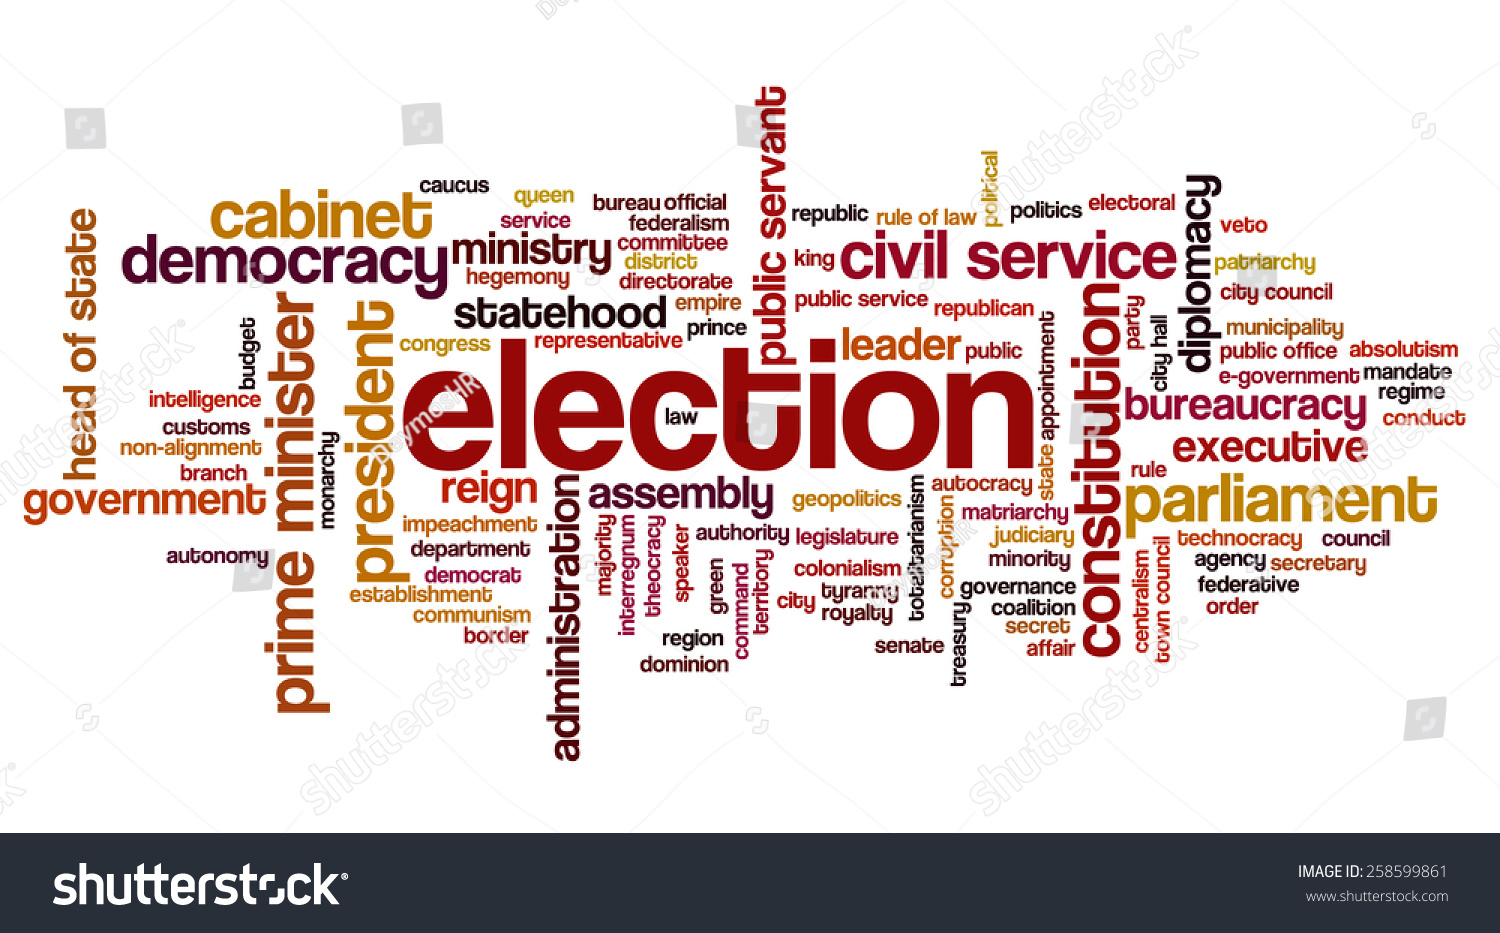 democracy terms parliamentary